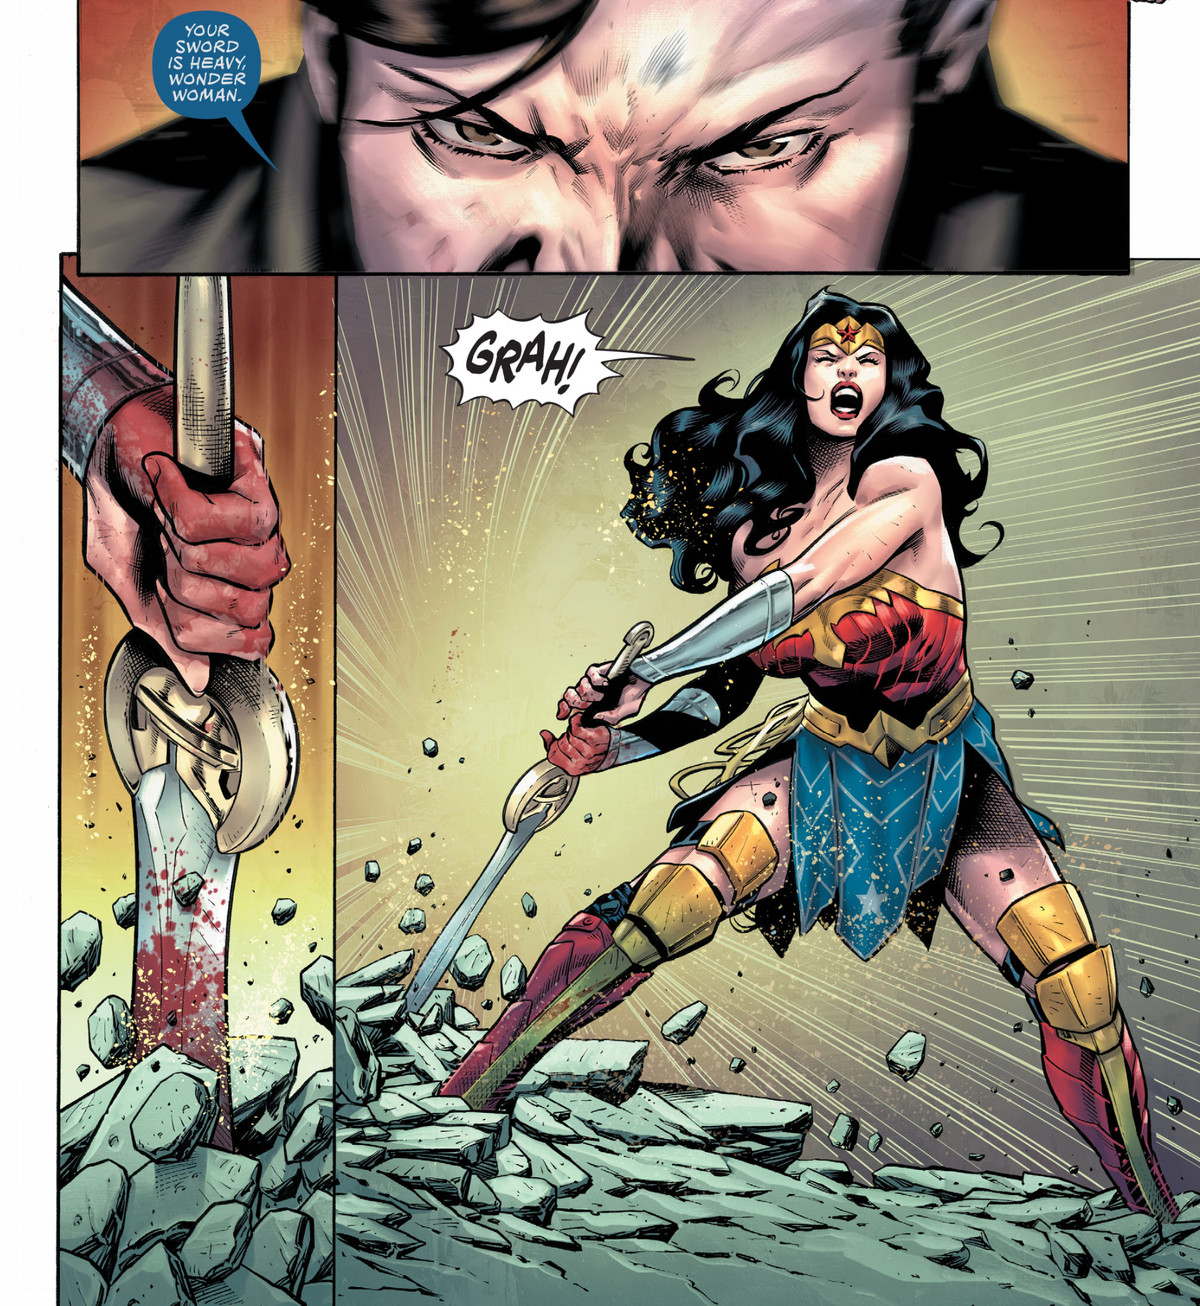 """""""Your sword is heavy, Wonder Woman,"""" says Max Lord, using his mind control powers. Wonder Woman's sword slams into the marble floor hard enough to burst it. """"GRAH!"""" she yells, as she lifts it anyway, in Wonder Woman #767, DC Comics (2020)."""